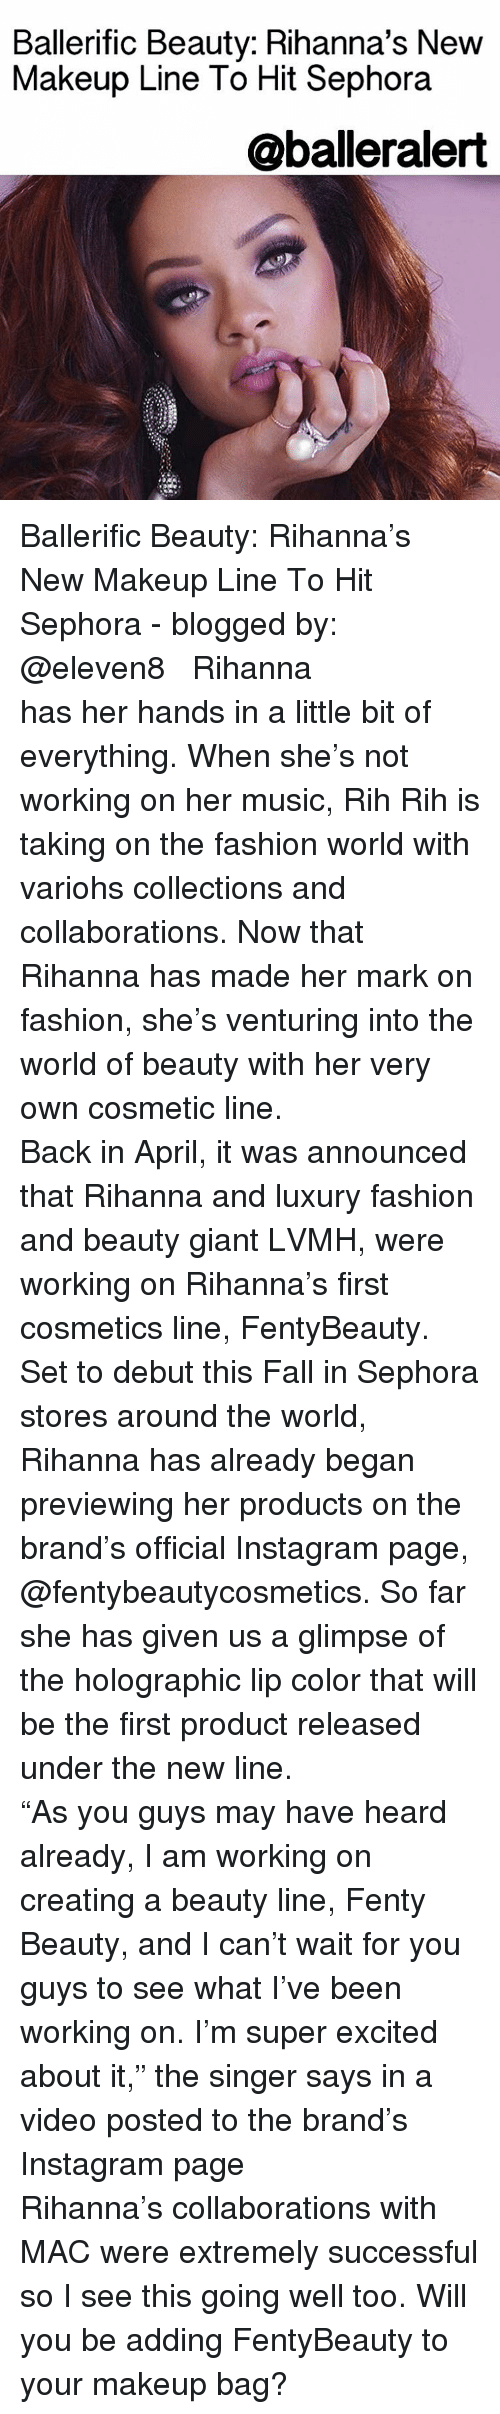 "Memes, Rihanna, and Blog: Ballerific Beauty: Rihanna's New  Makeup Line To Hit Sephora  @balleralert Ballerific Beauty: Rihanna's New Makeup Line To Hit Sephora - blogged by: @eleven8 ⠀⠀⠀⠀⠀⠀⠀⠀⠀ ⠀⠀⠀⠀⠀⠀⠀⠀⠀ Rihanna has her hands in a little bit of everything. When she's not working on her music, Rih Rih is taking on the fashion world with variohs collections and collaborations. Now that Rihanna has made her mark on fashion, she's venturing into the world of beauty with her very own cosmetic line. ⠀⠀⠀⠀⠀⠀⠀⠀⠀ ⠀⠀⠀⠀⠀⠀⠀⠀⠀ Back in April, it was announced that Rihanna and luxury fashion and beauty giant LVMH, were working on Rihanna's first cosmetics line, FentyBeauty. Set to debut this Fall in Sephora stores around the world, Rihanna has already began previewing her products on the brand's official Instagram page, @fentybeautycosmetics. So far she has given us a glimpse of the holographic lip color that will be the first product released under the new line. ⠀⠀⠀⠀⠀⠀⠀⠀⠀ ⠀⠀⠀⠀⠀⠀⠀⠀⠀ ""As you guys may have heard already, I am working on creating a beauty line, Fenty Beauty, and I can't wait for you guys to see what I've been working on. I'm super excited about it,"" the singer says in a video posted to the brand's Instagram page ⠀⠀⠀⠀⠀⠀⠀⠀⠀ ⠀⠀⠀⠀⠀⠀⠀⠀⠀ Rihanna's collaborations with MAC were extremely successful so I see this going well too. Will you be adding FentyBeauty to your makeup bag?"